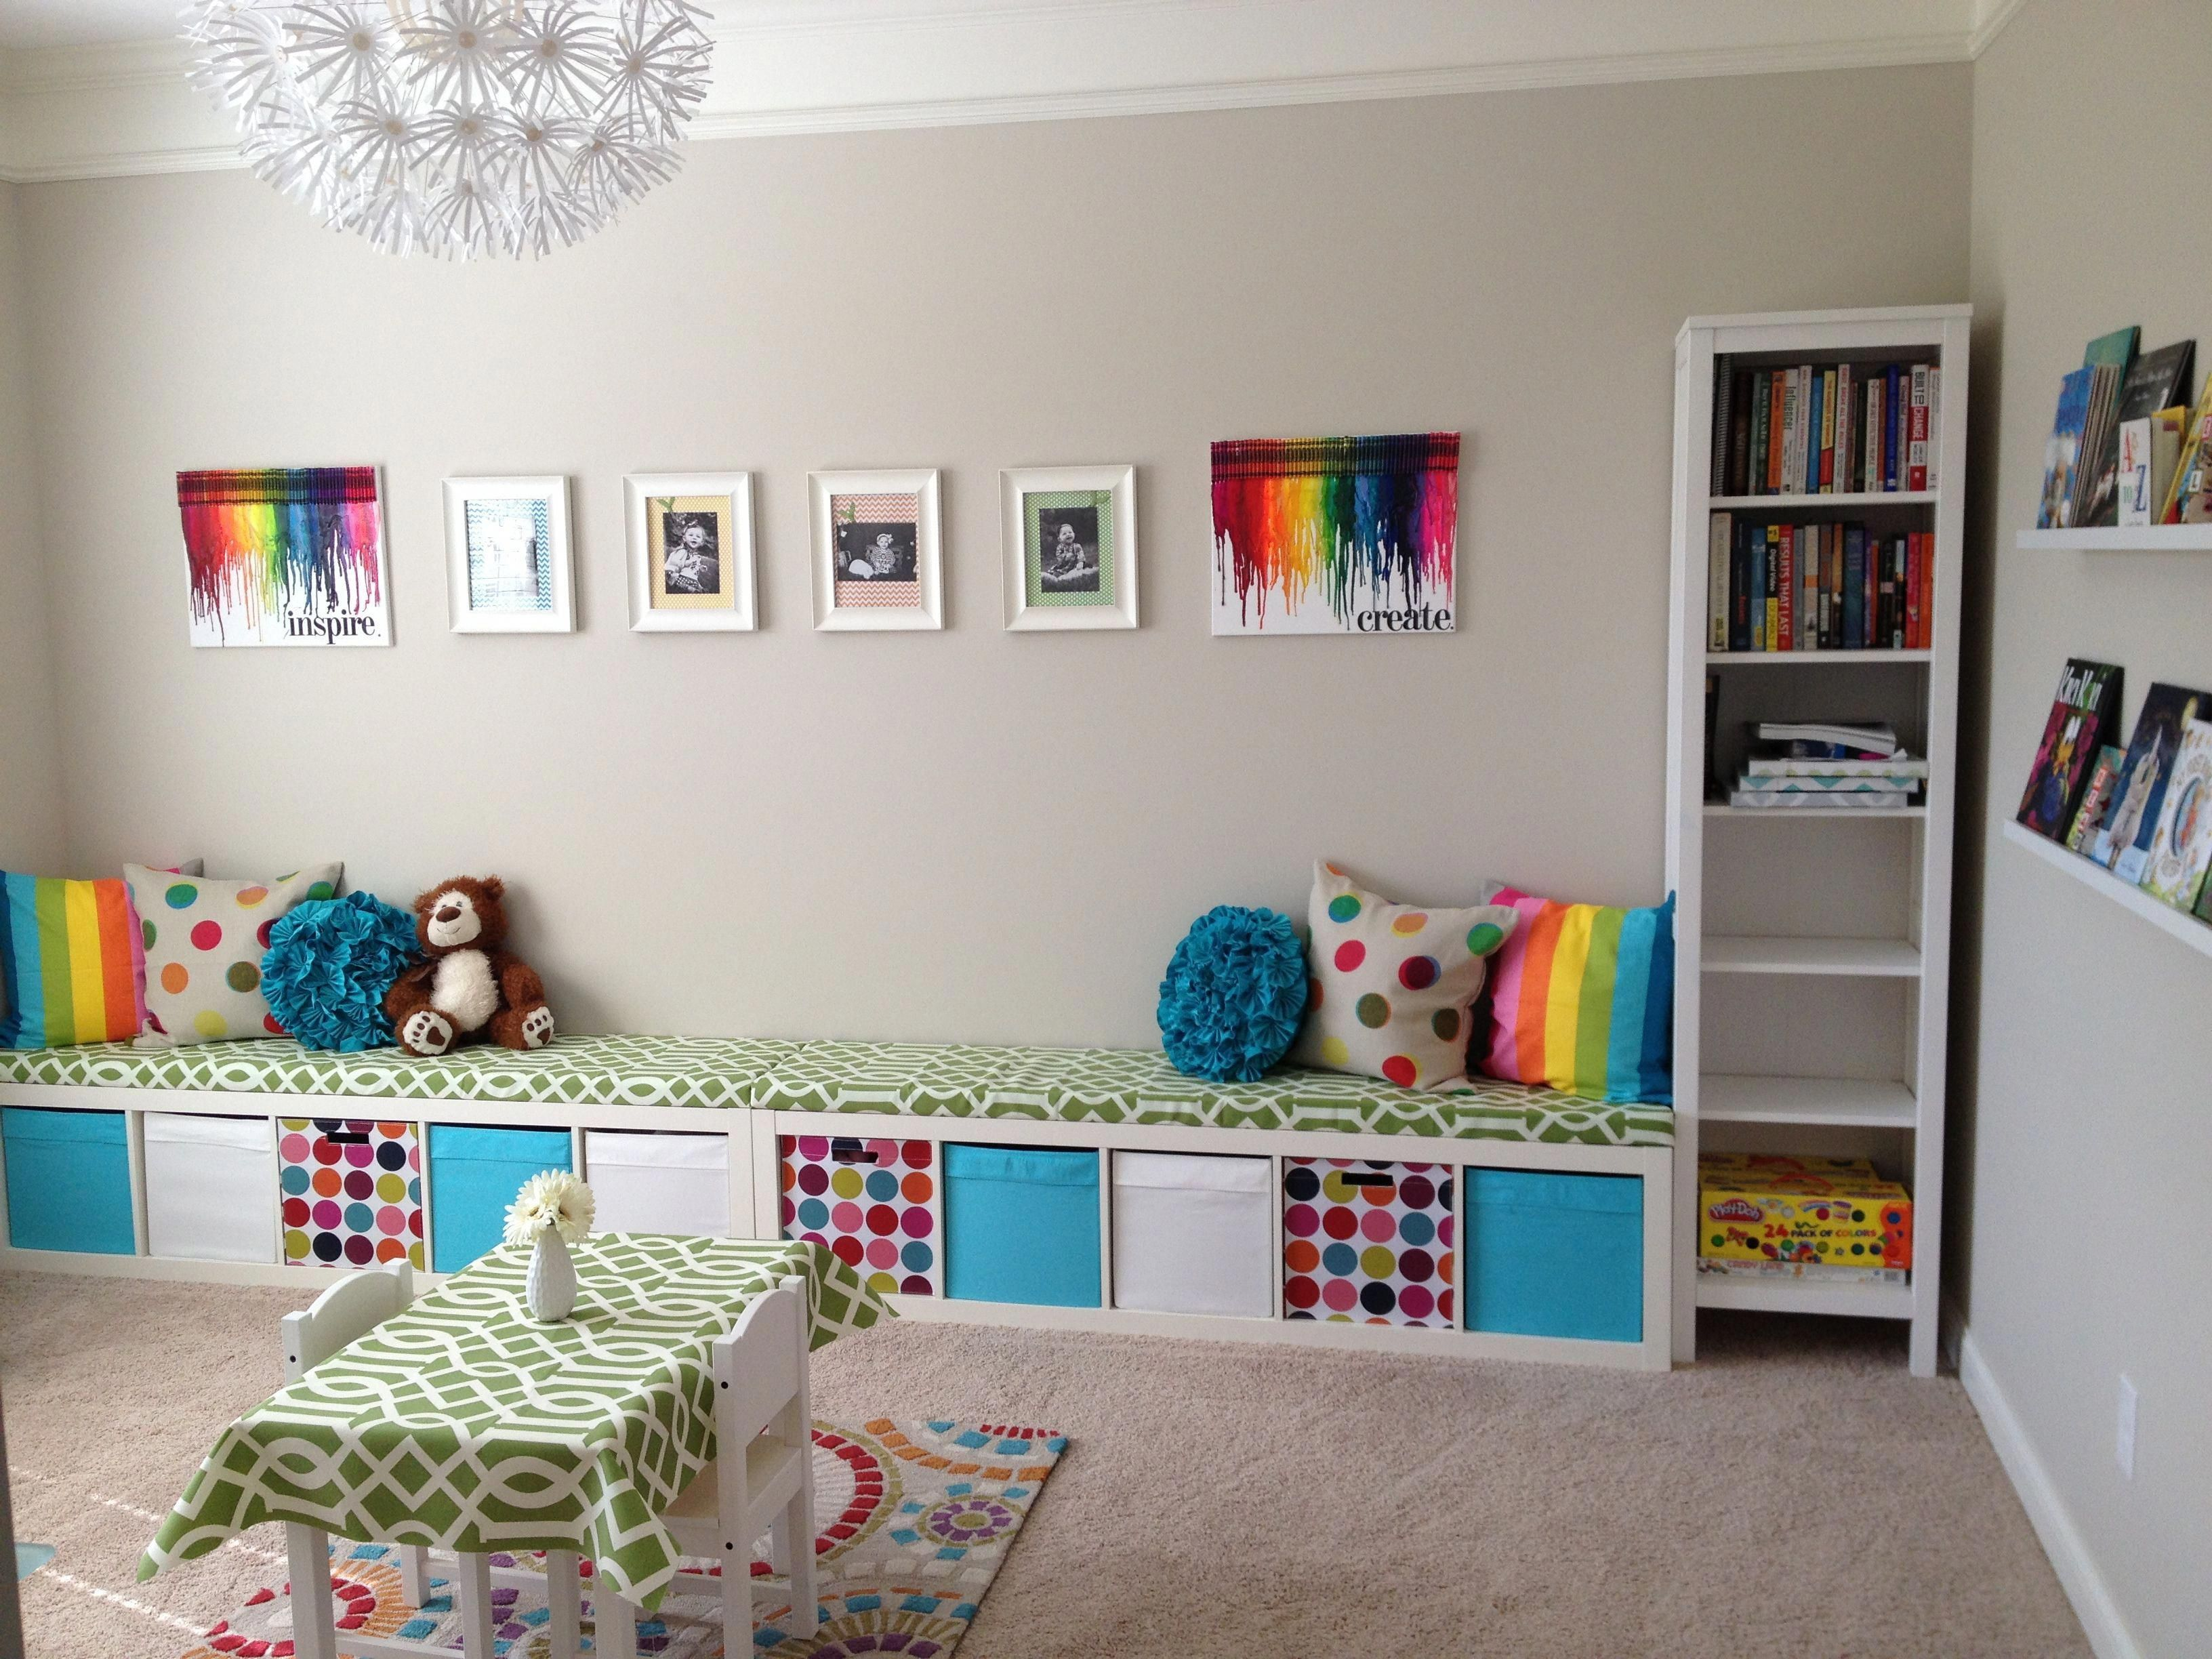 5 Smart And Creative Playroom Ideas On A Budget For The Best Room